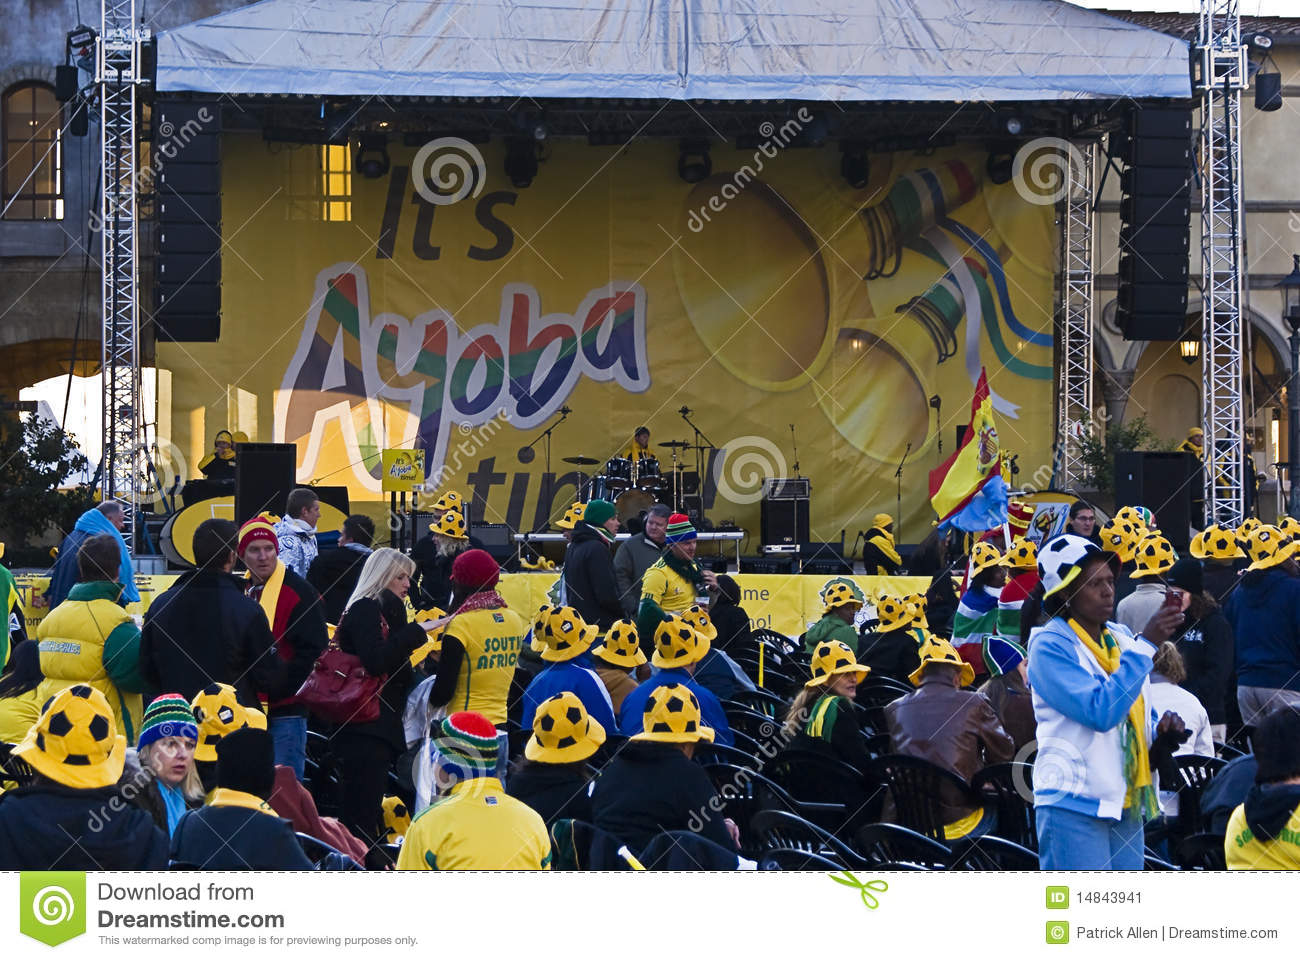 mtn ayoba campaign This short film explores the context and impact of the 'ayoba' campaign by mobile telecoms network mtn they were africa's first global sponsors of.